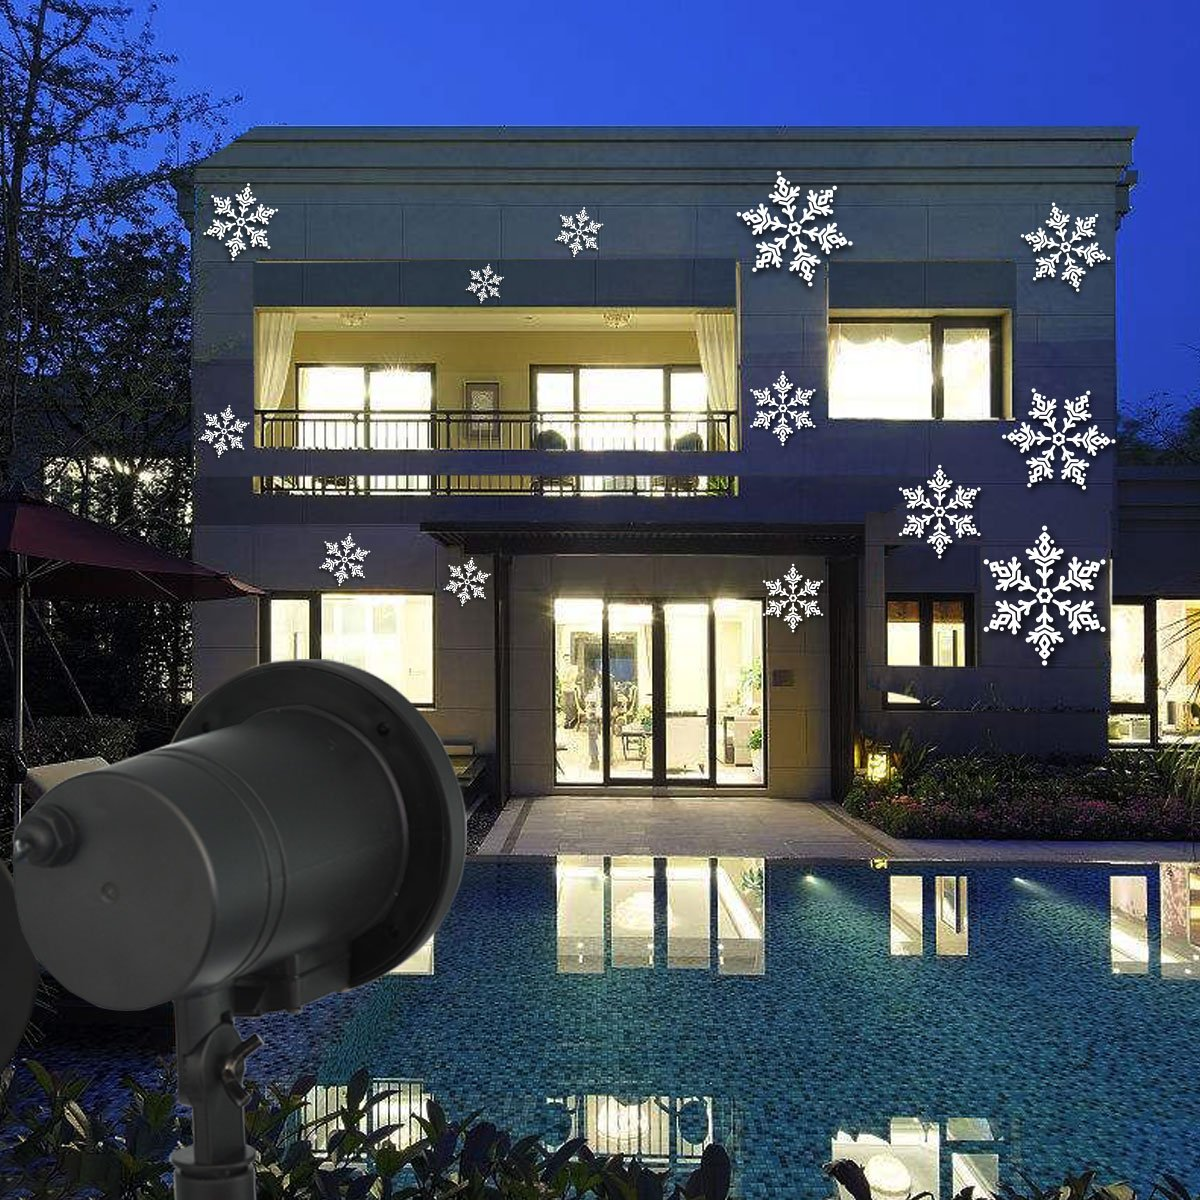 Wixure LED Snowflake Light LED Snowfall Rotating Projector Waterproof Outdoor with Power Supply Transformer &16.4ft Cable for Patio Garden Wedding Party